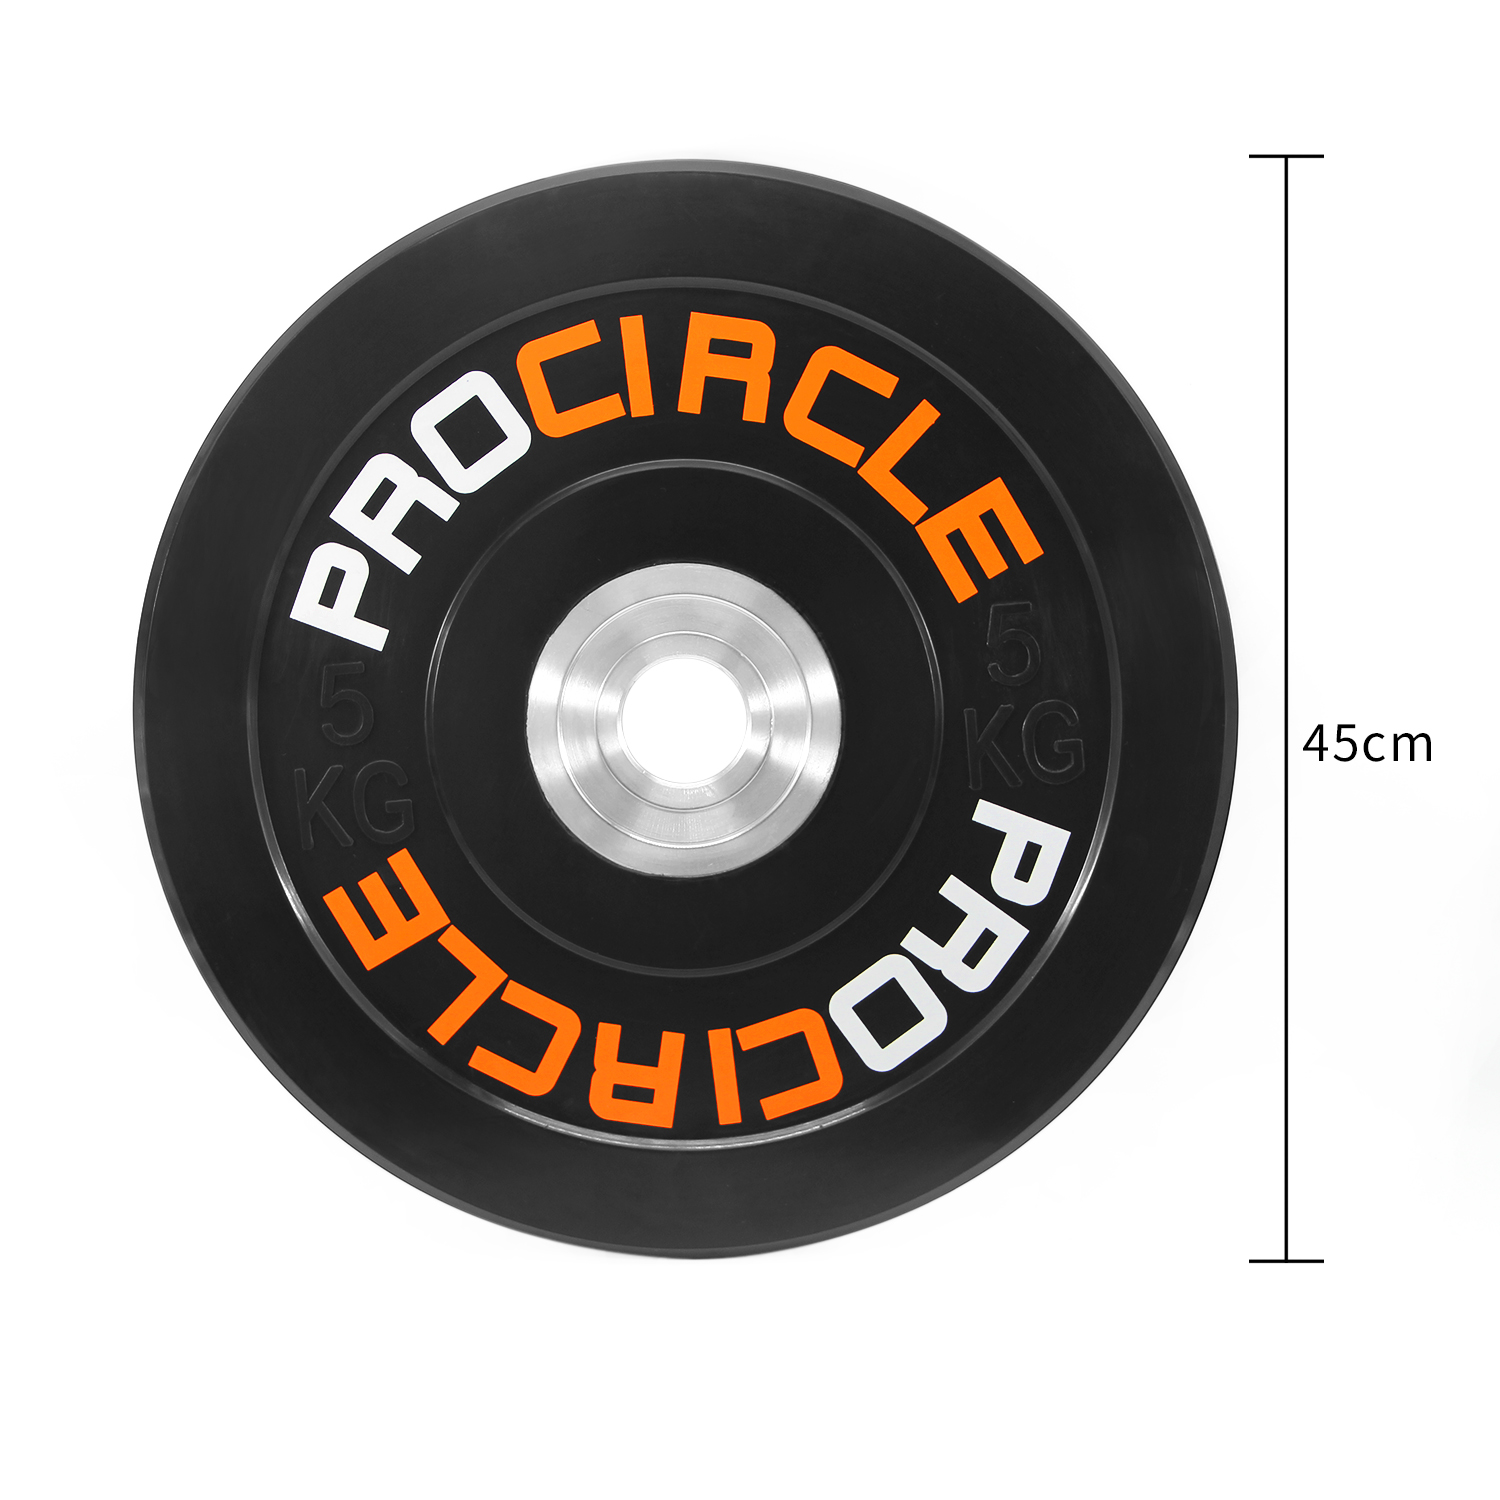 Fitness Olympic Bumper Plate For 5 Weights Available (10 to 45lbs)